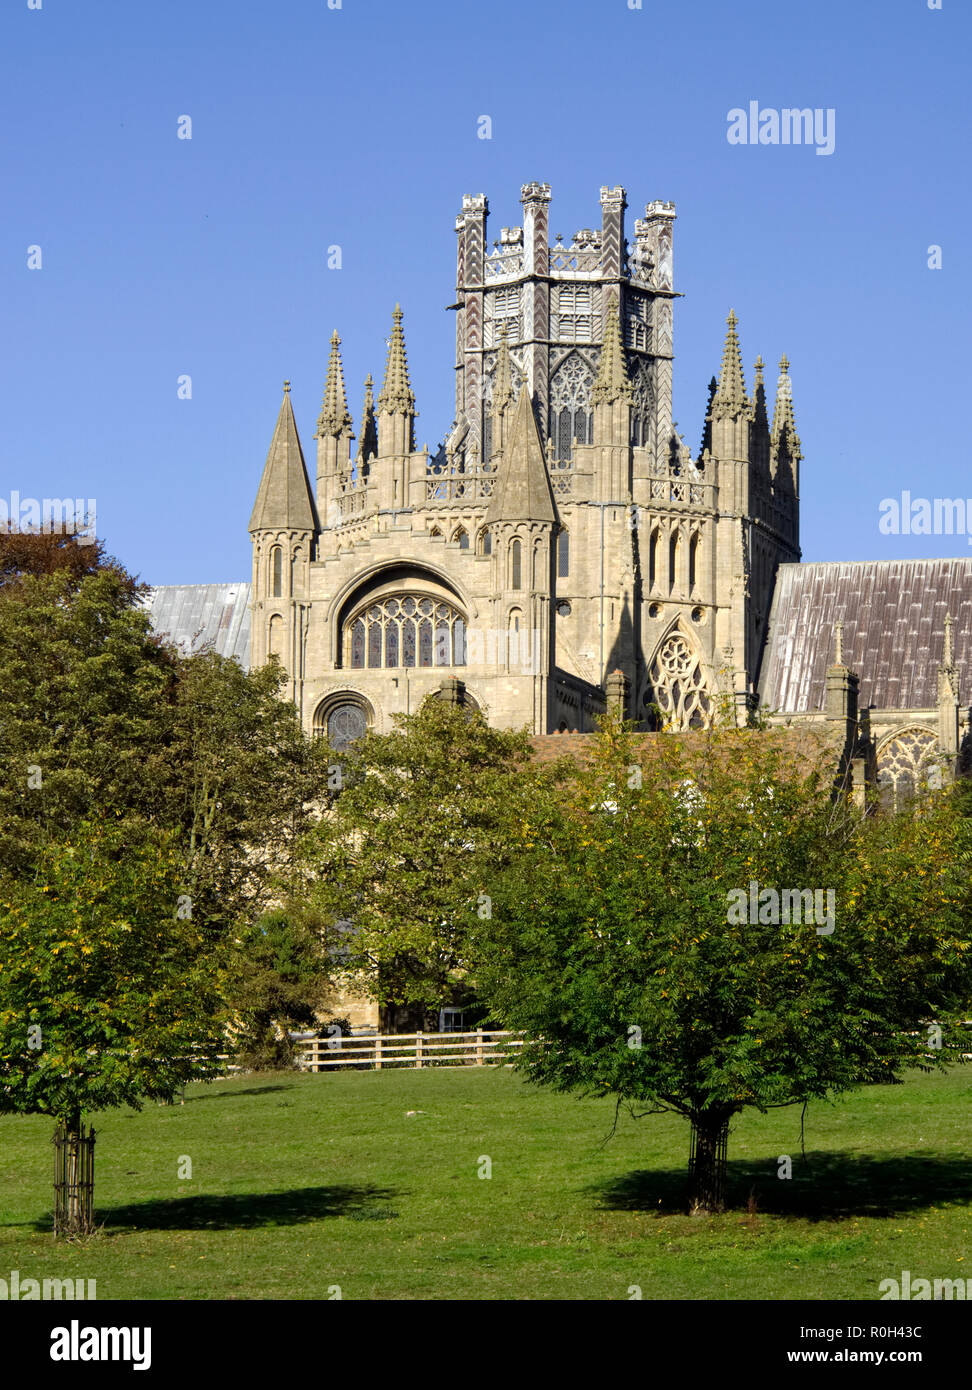 View of the magnificent Ely Cathedral in Ely, Cambridgeshire from The Deans Meadow showing the Gothic splendour ot this medieval masterpiece. Stock Photo